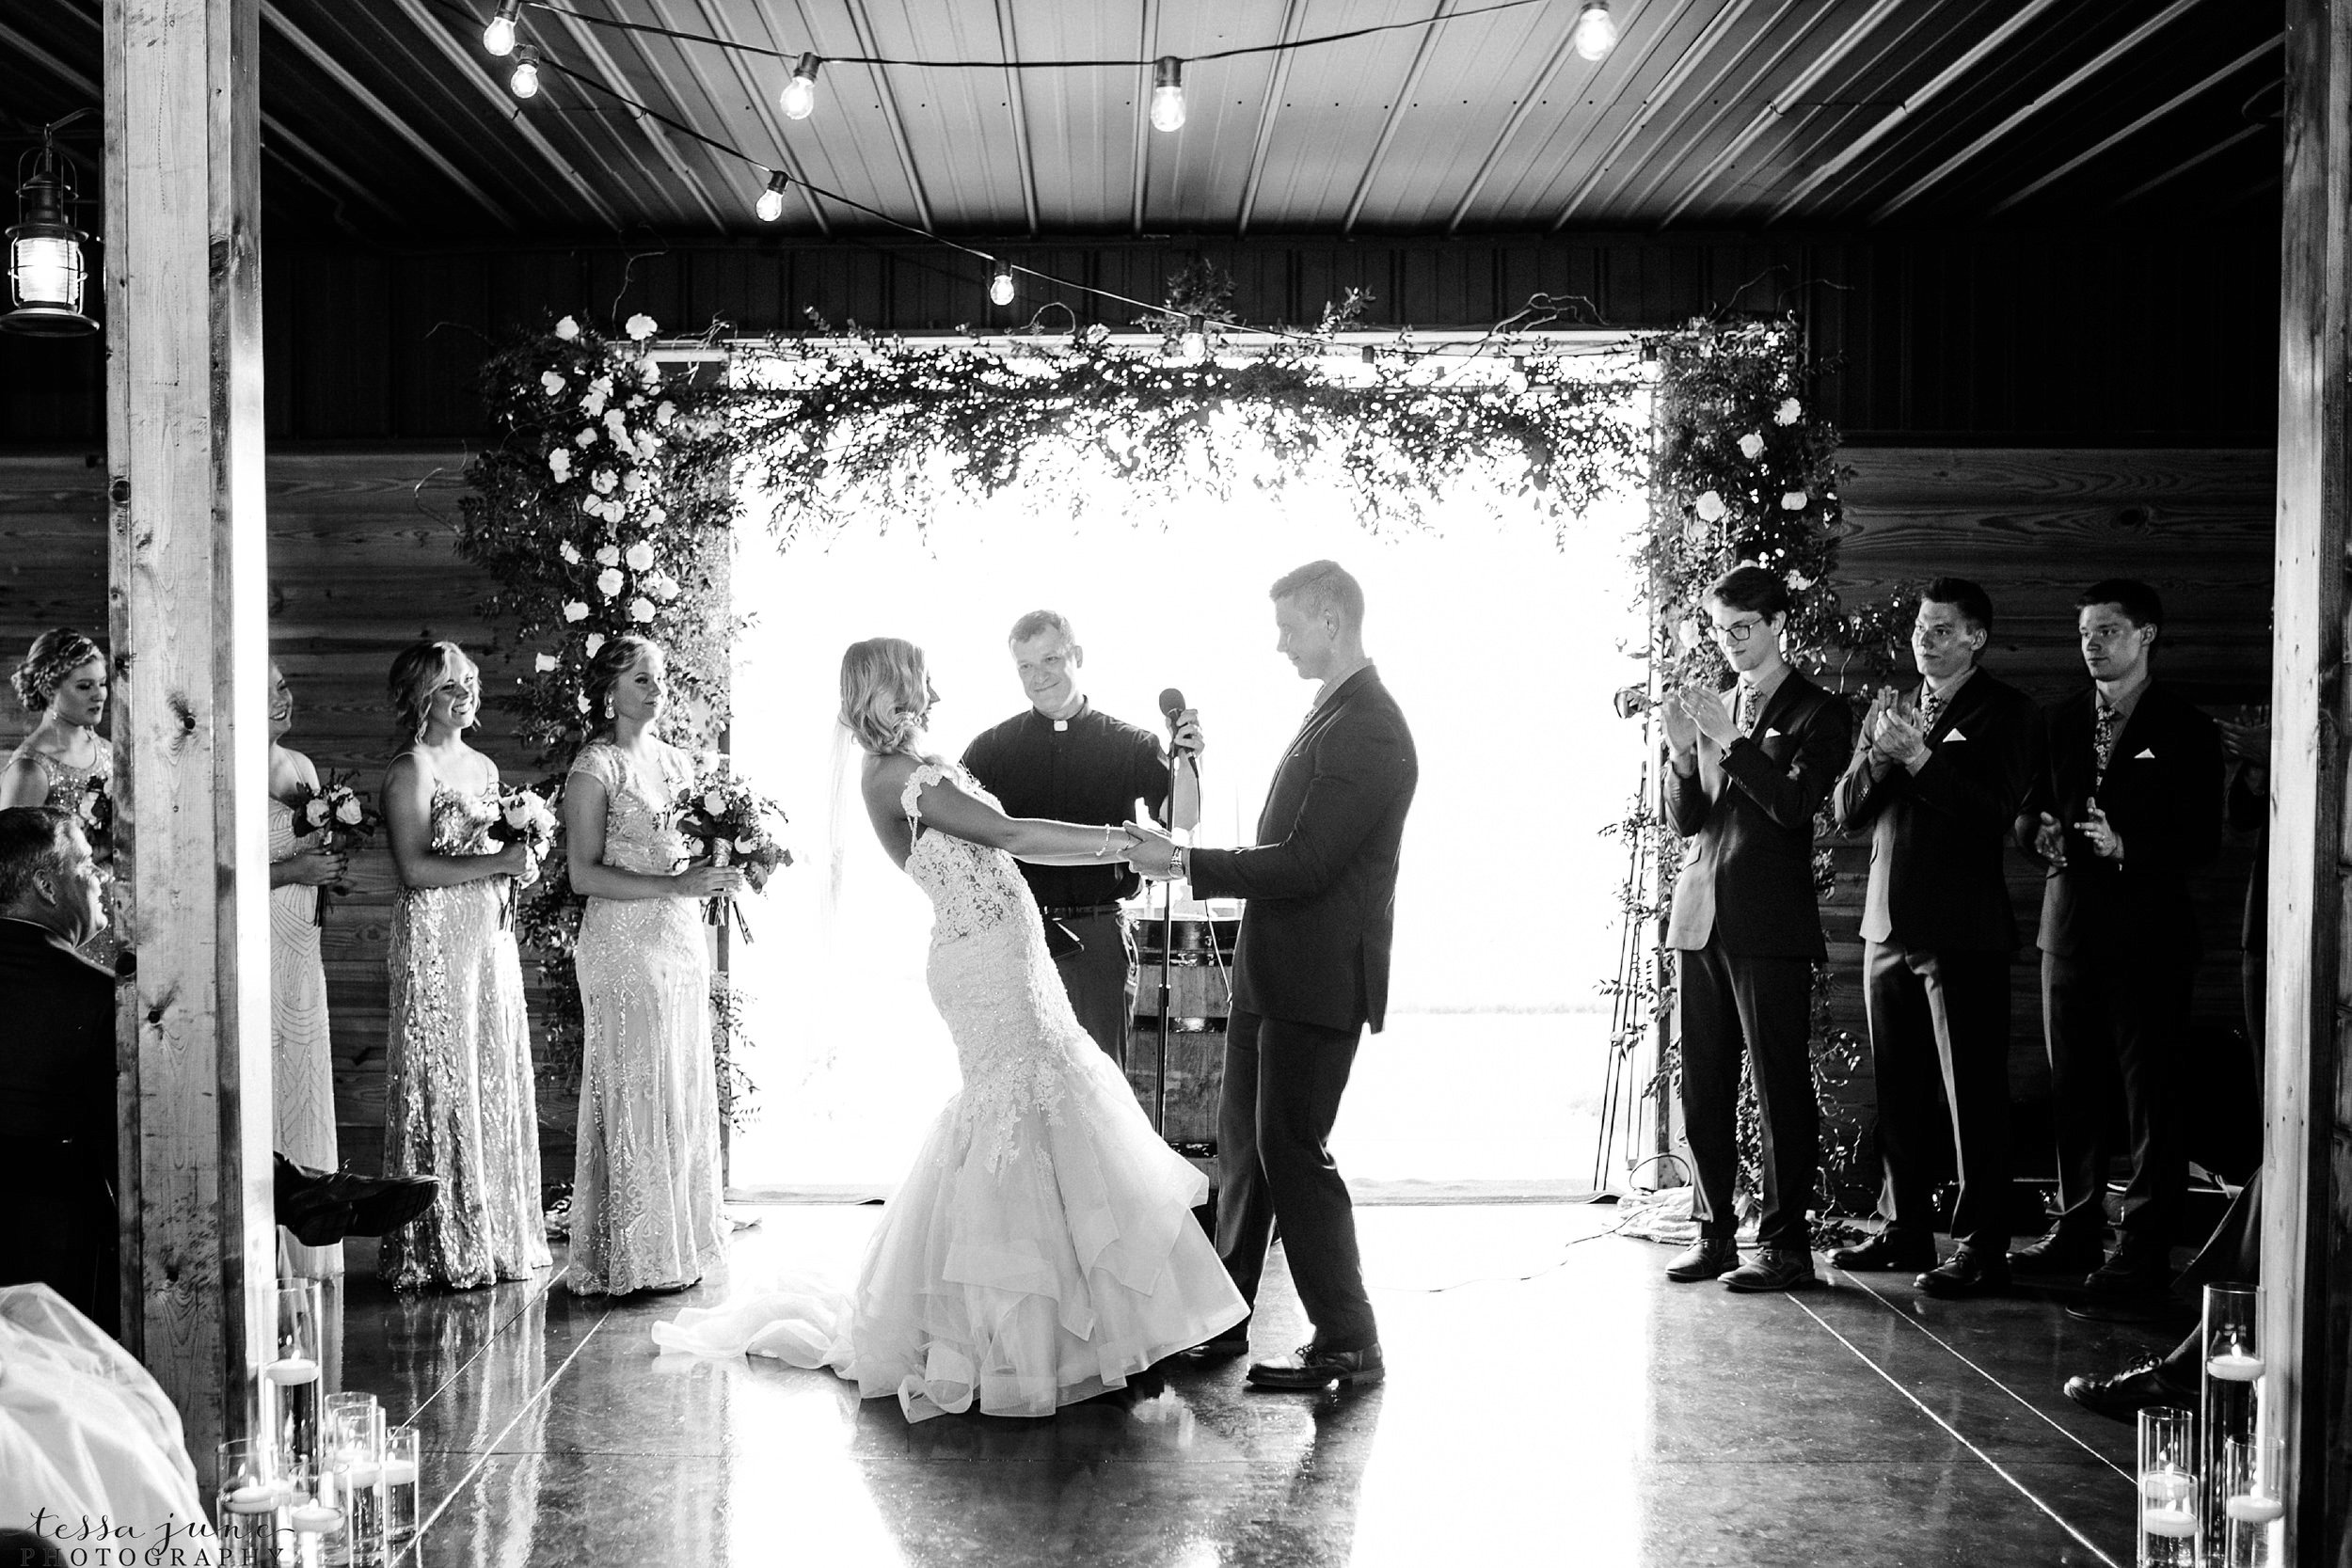 carlos-creek-winery-wedding-alexandria-minnesota-glam-elegant-floral-112.jpg